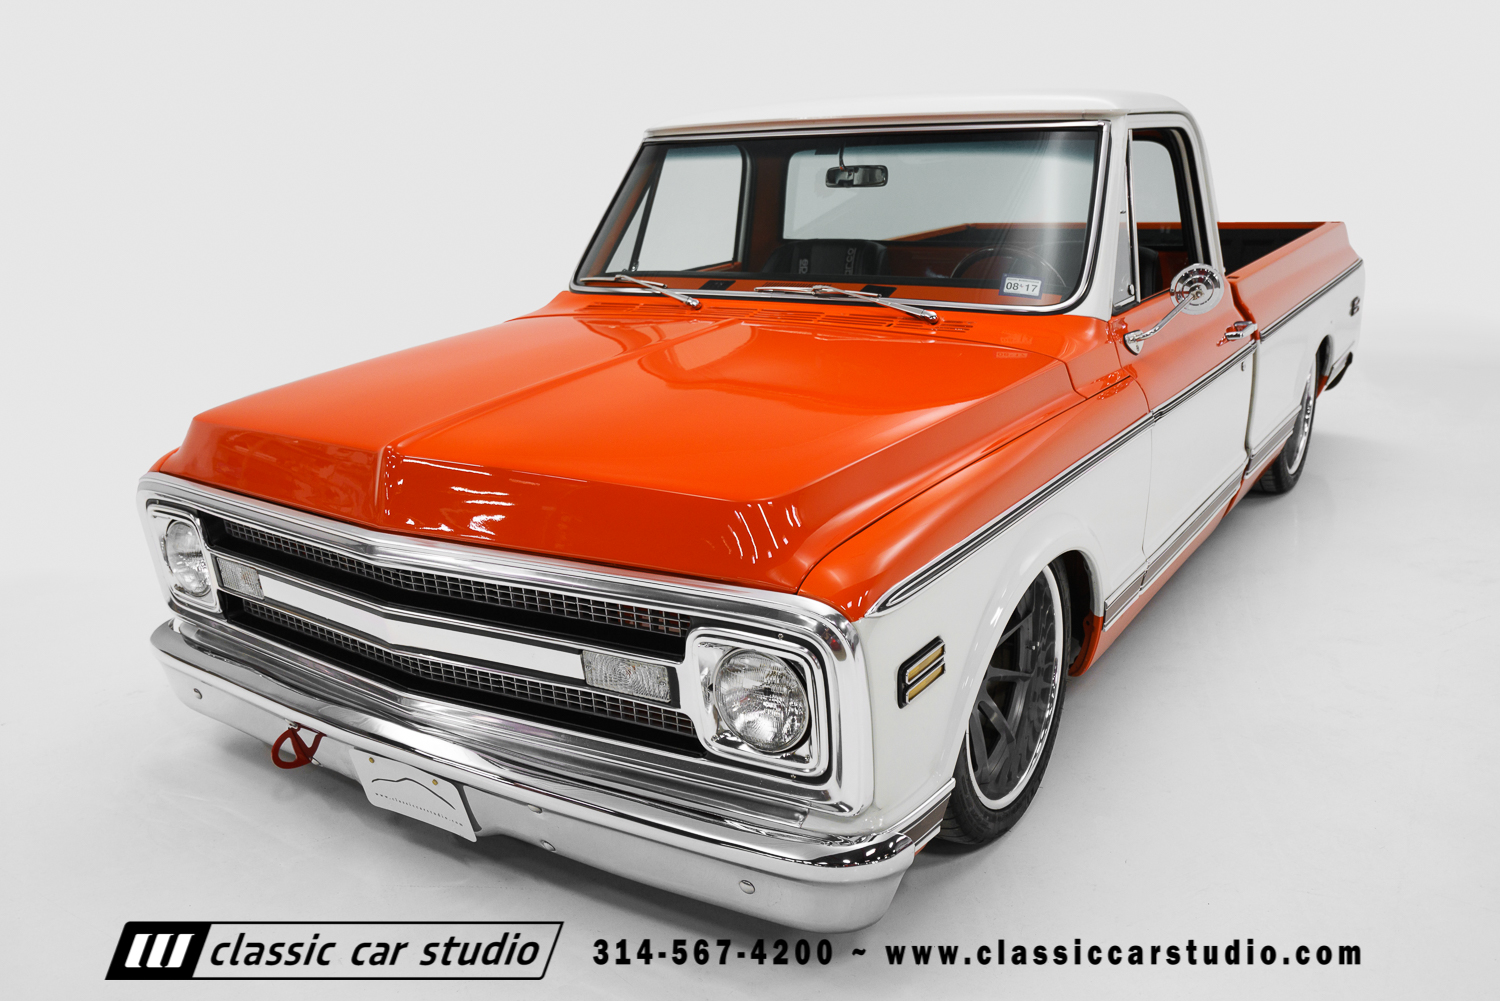 1970 Chevrolet C10 Pro Touring Classic Car Studio 1961 Chevy Short Bed 70 2